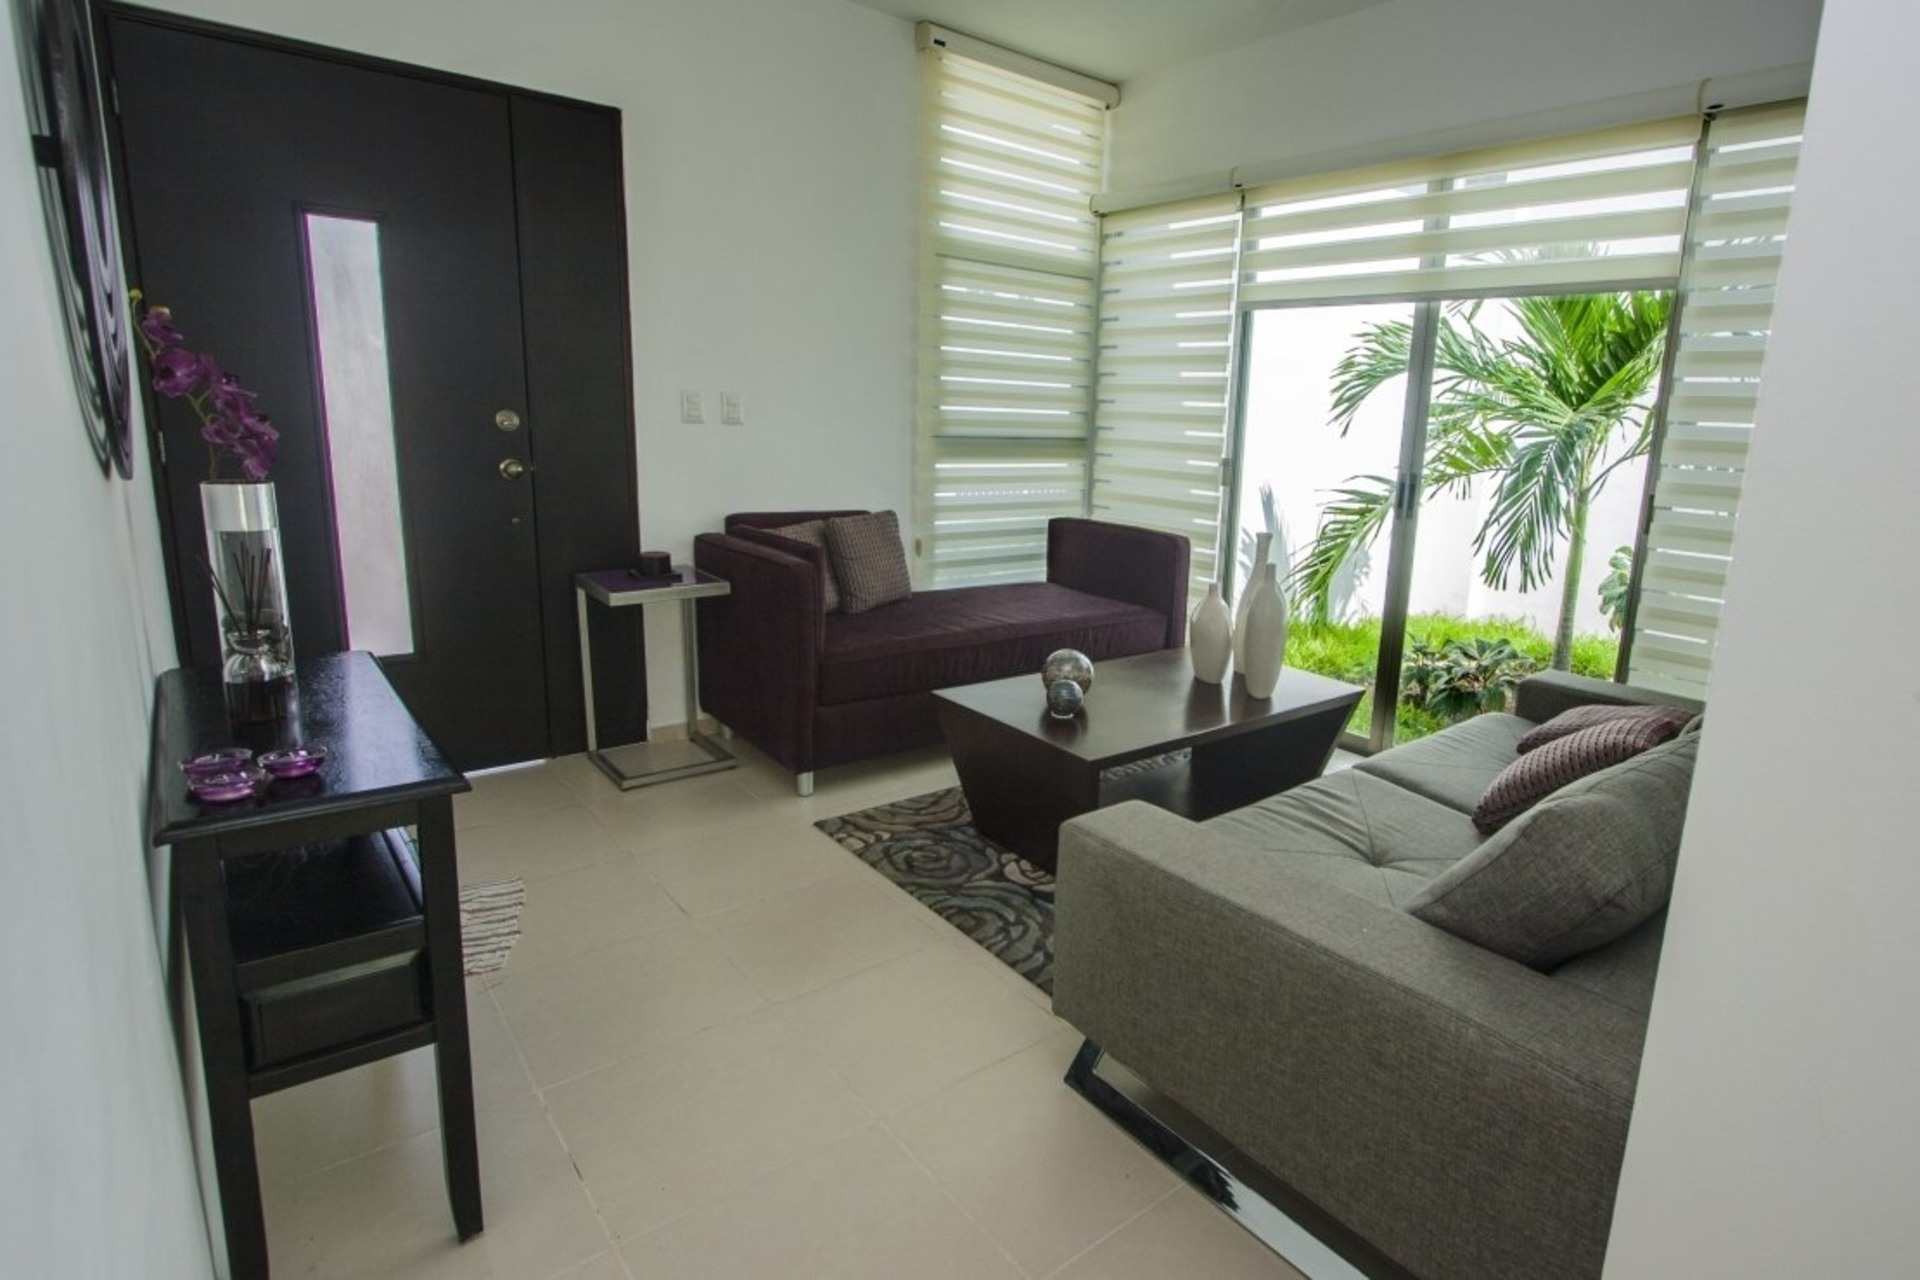 image 3 - House For sale Autres pays / Other countries - 5 rooms